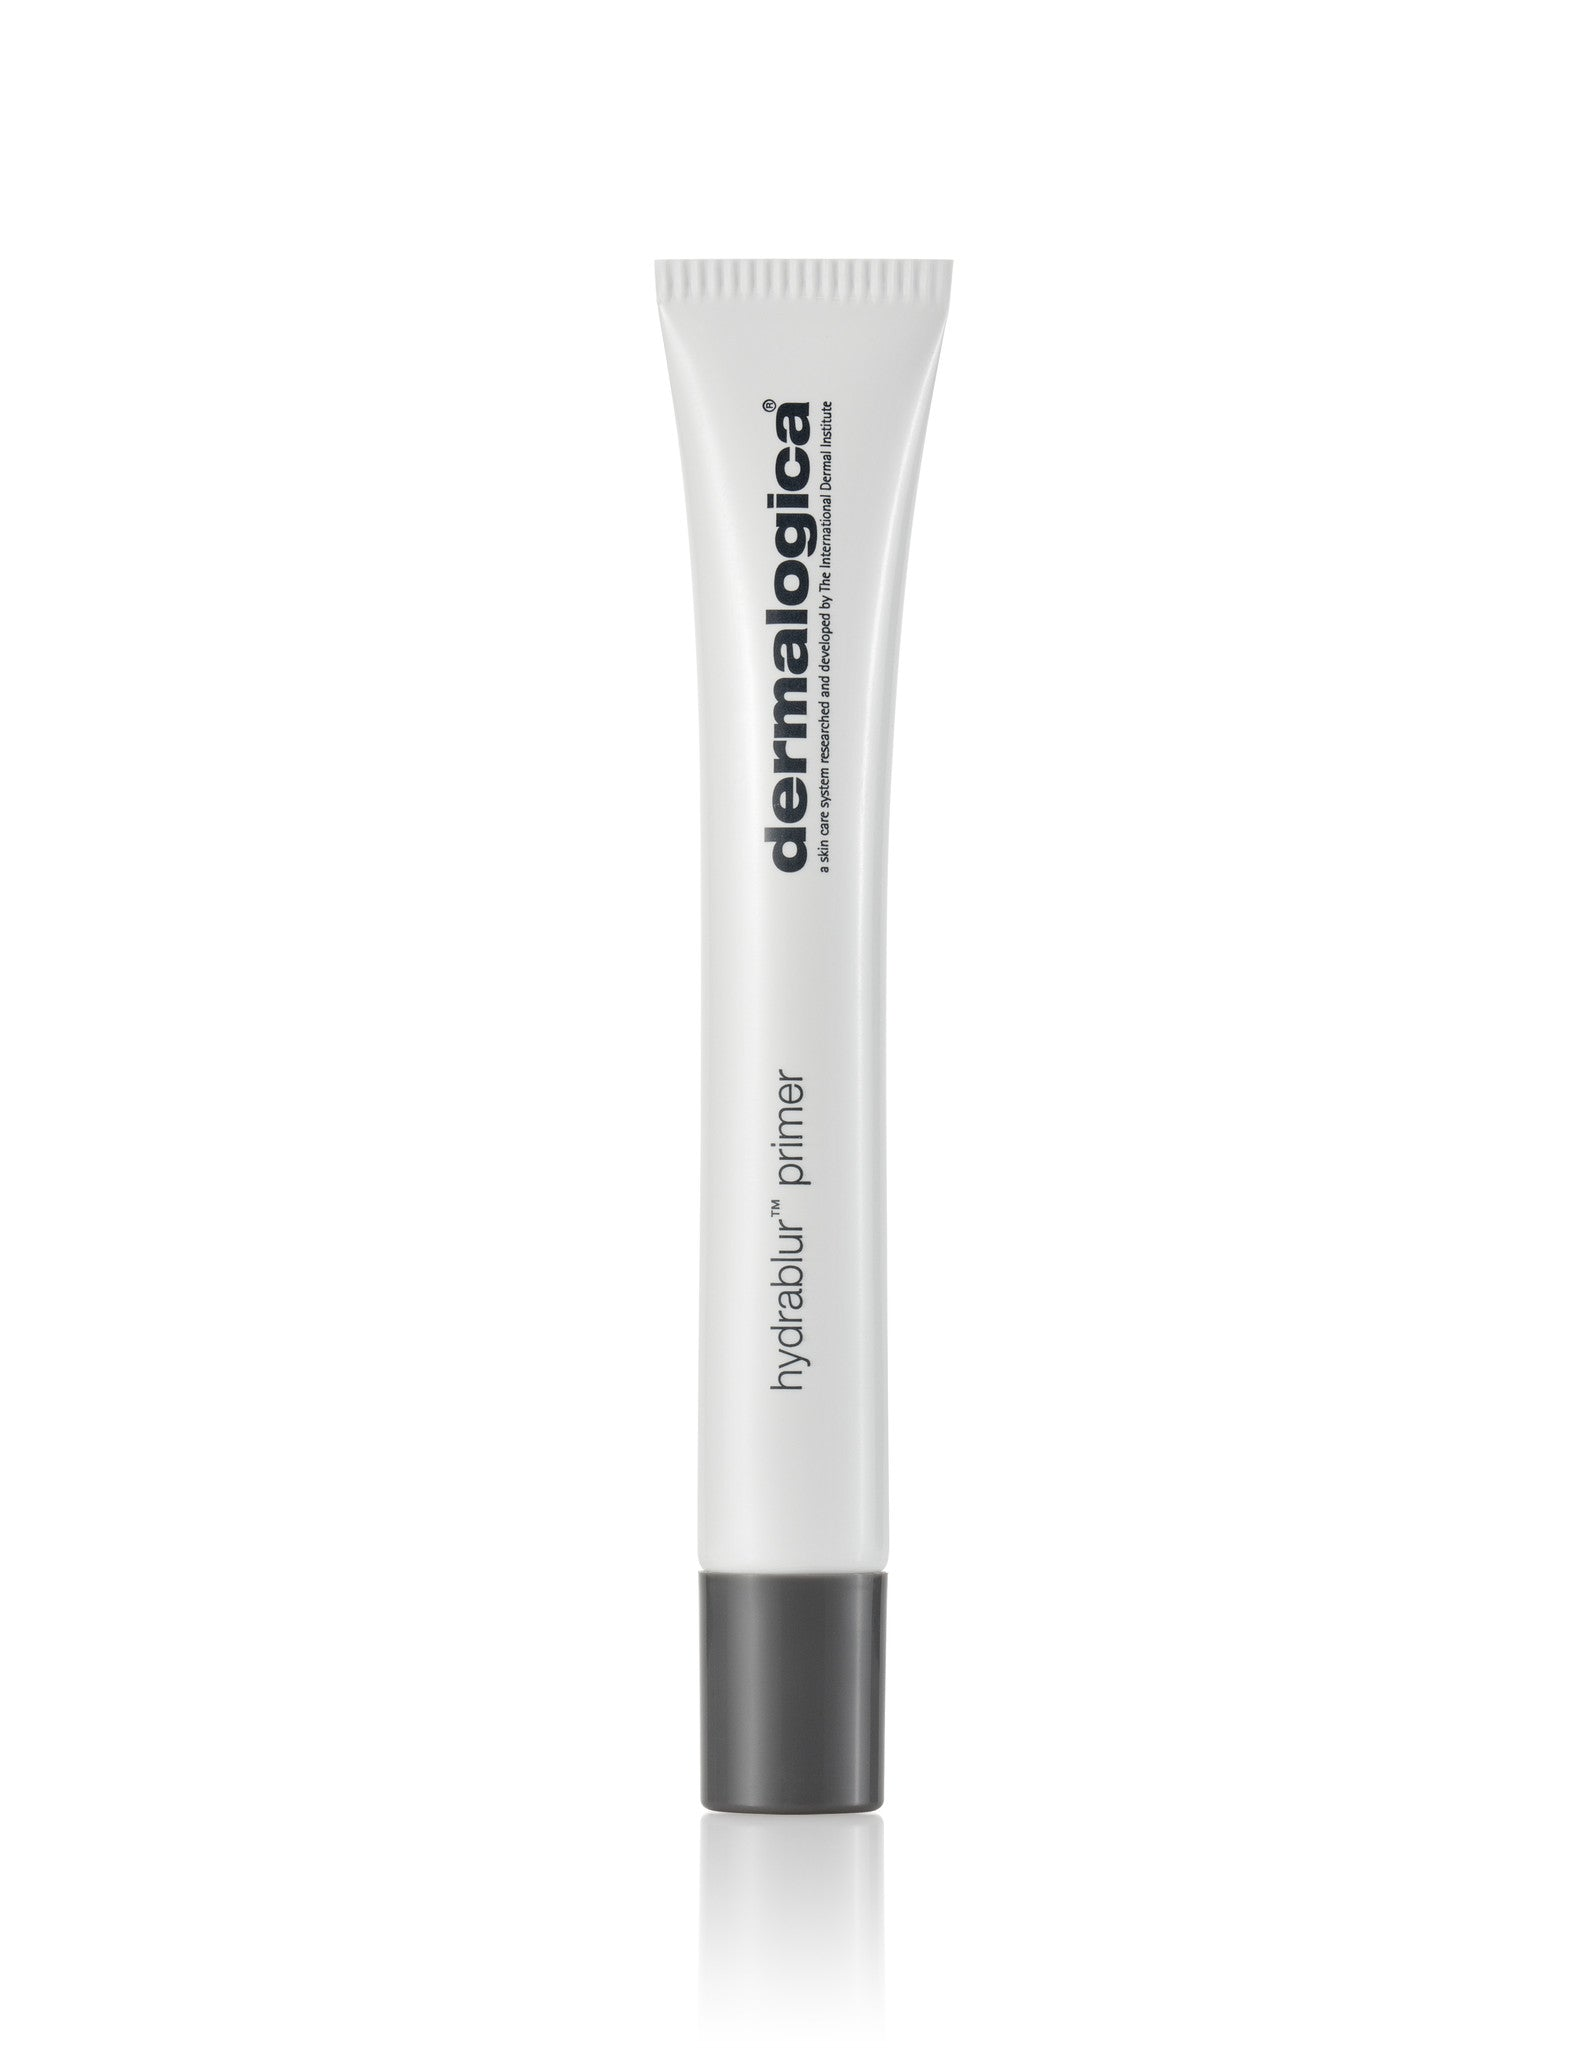 Dermalogica Hydrablur Primer 22ml + free samples + free post